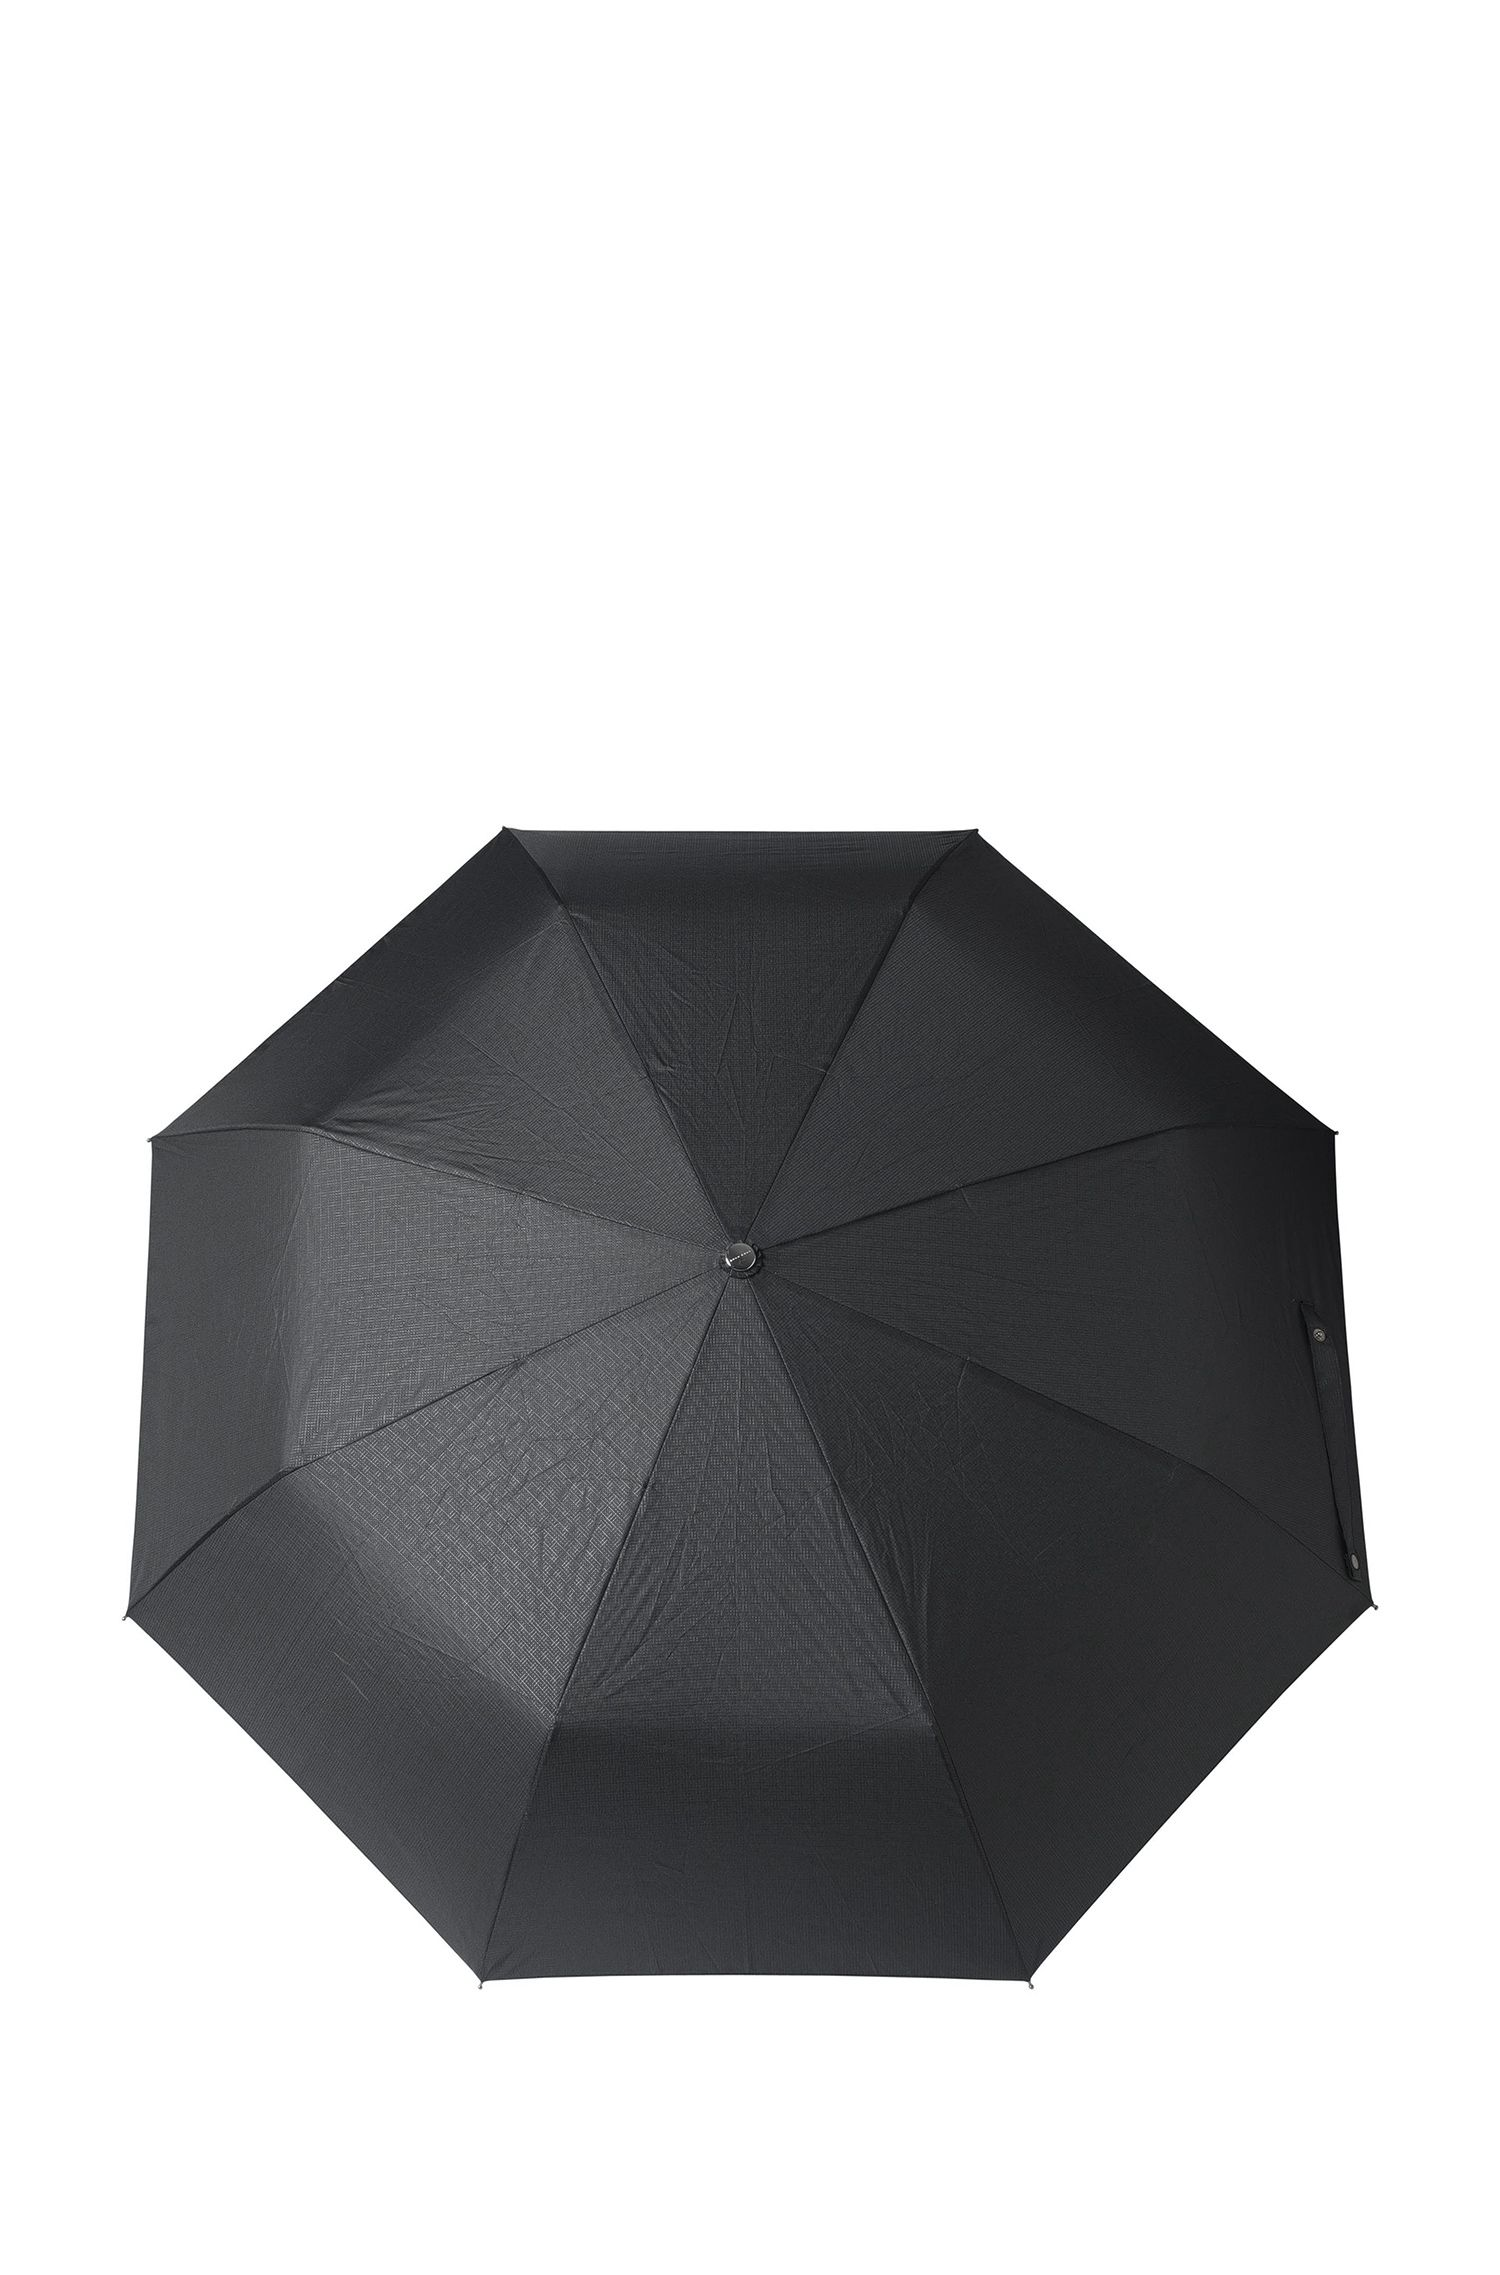 Parapluie pliable à déclenchement automatique : « Grid Pocket »